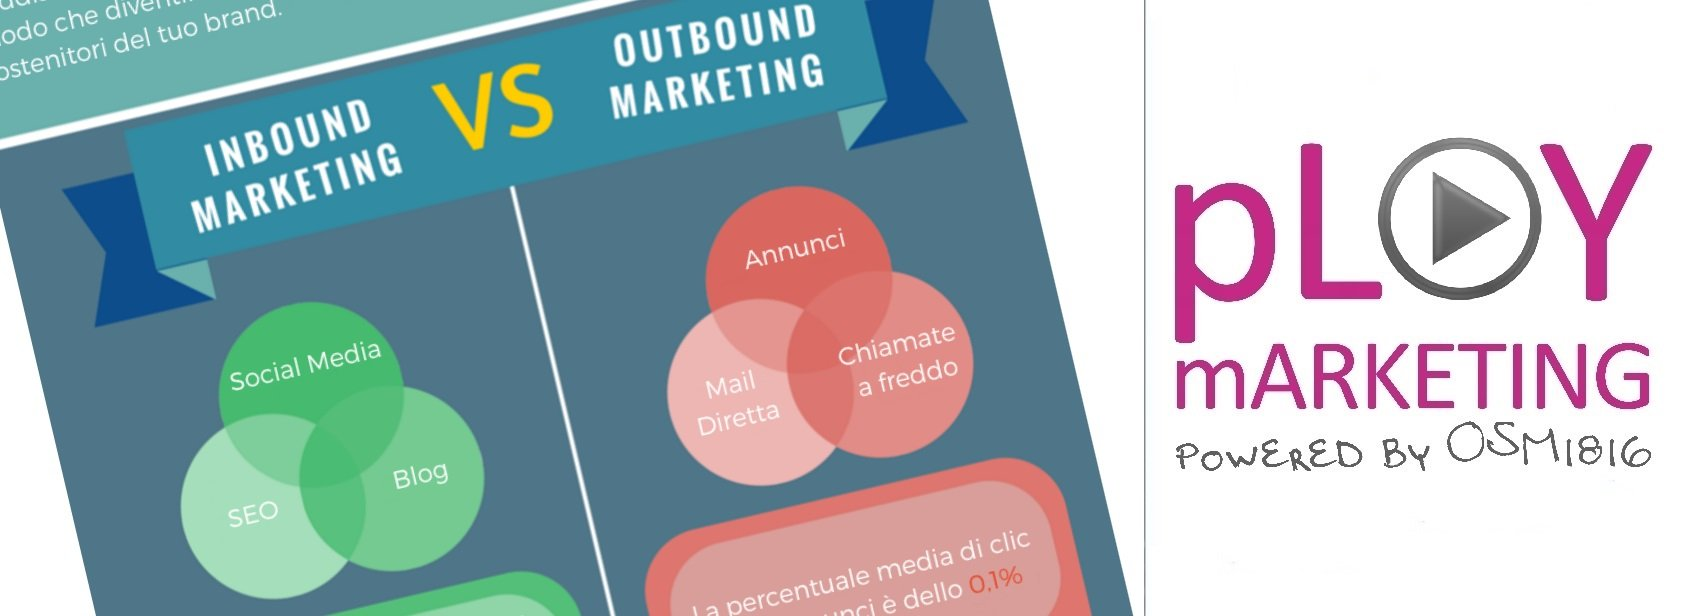 Infografica: Come funziona l'Inbound Marketing?